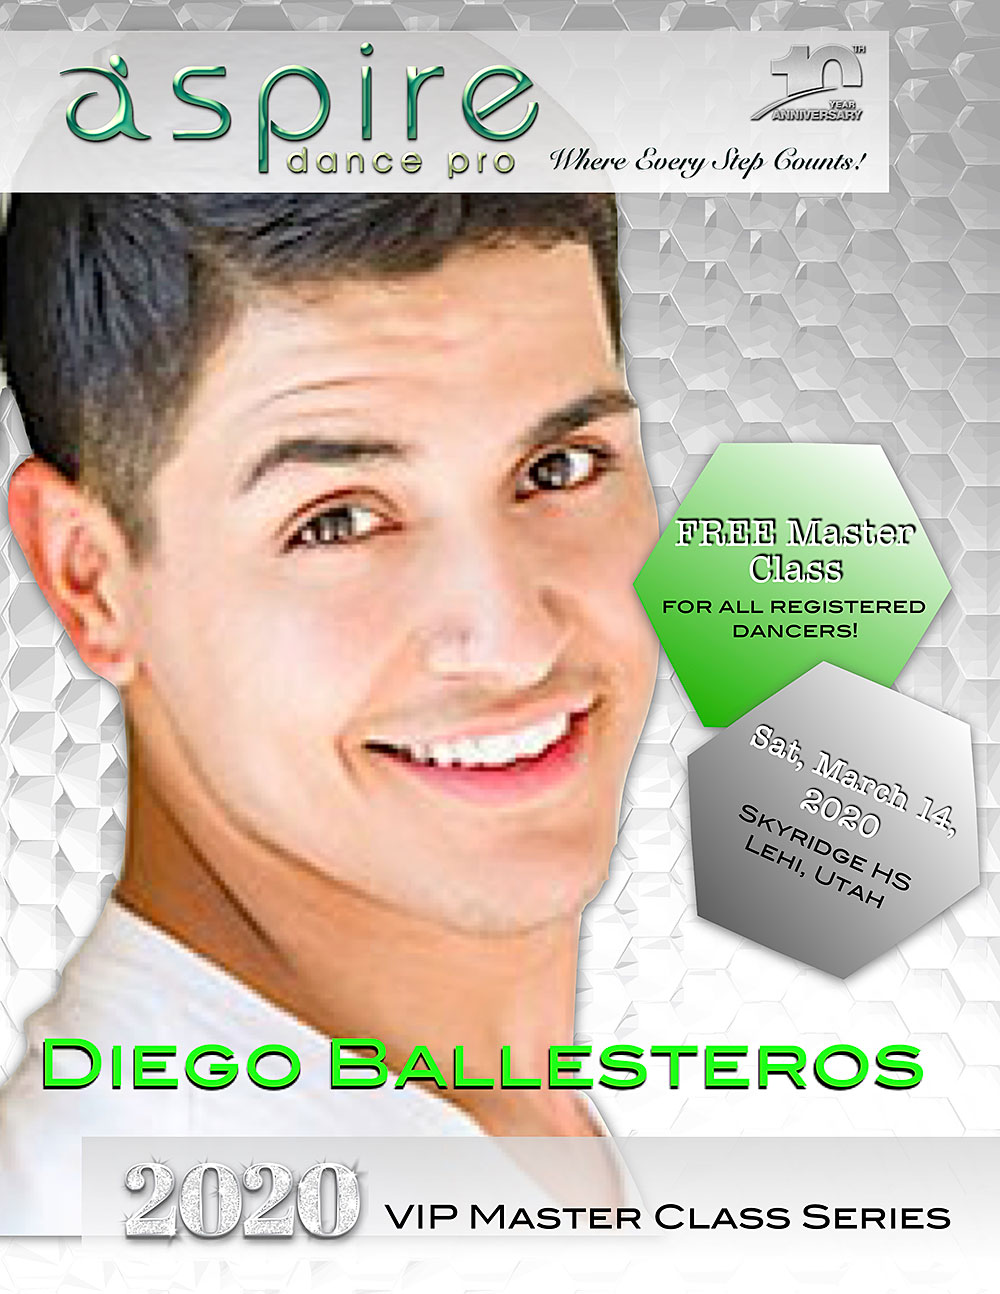 Diego Ballesteros - Aspire Dance Pro Competitions VIP Masterclass Instructor